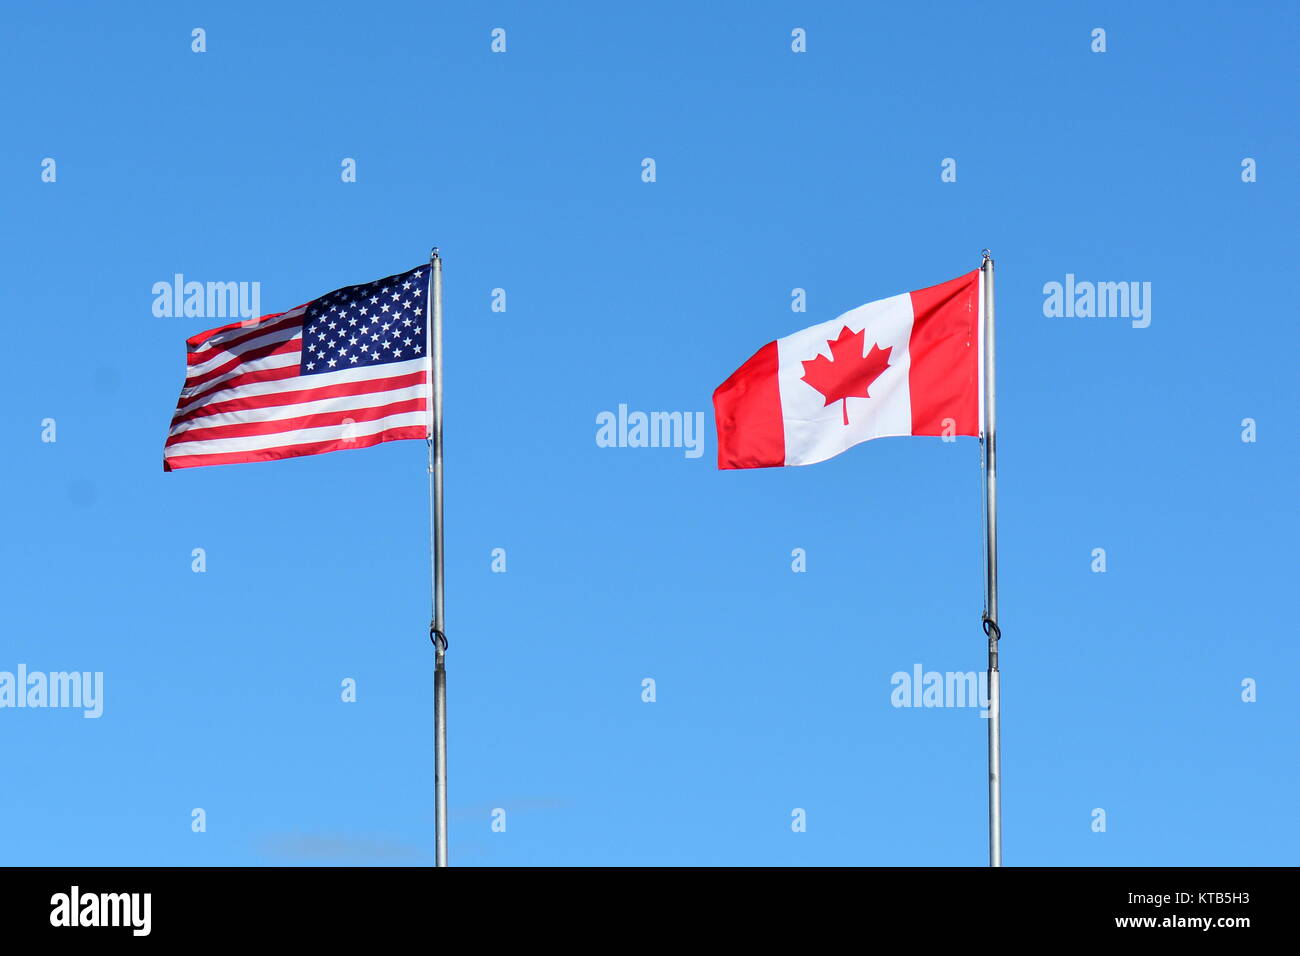 The flags of Canada and the US fly on a flag pole in Victoria BC. - Stock Image